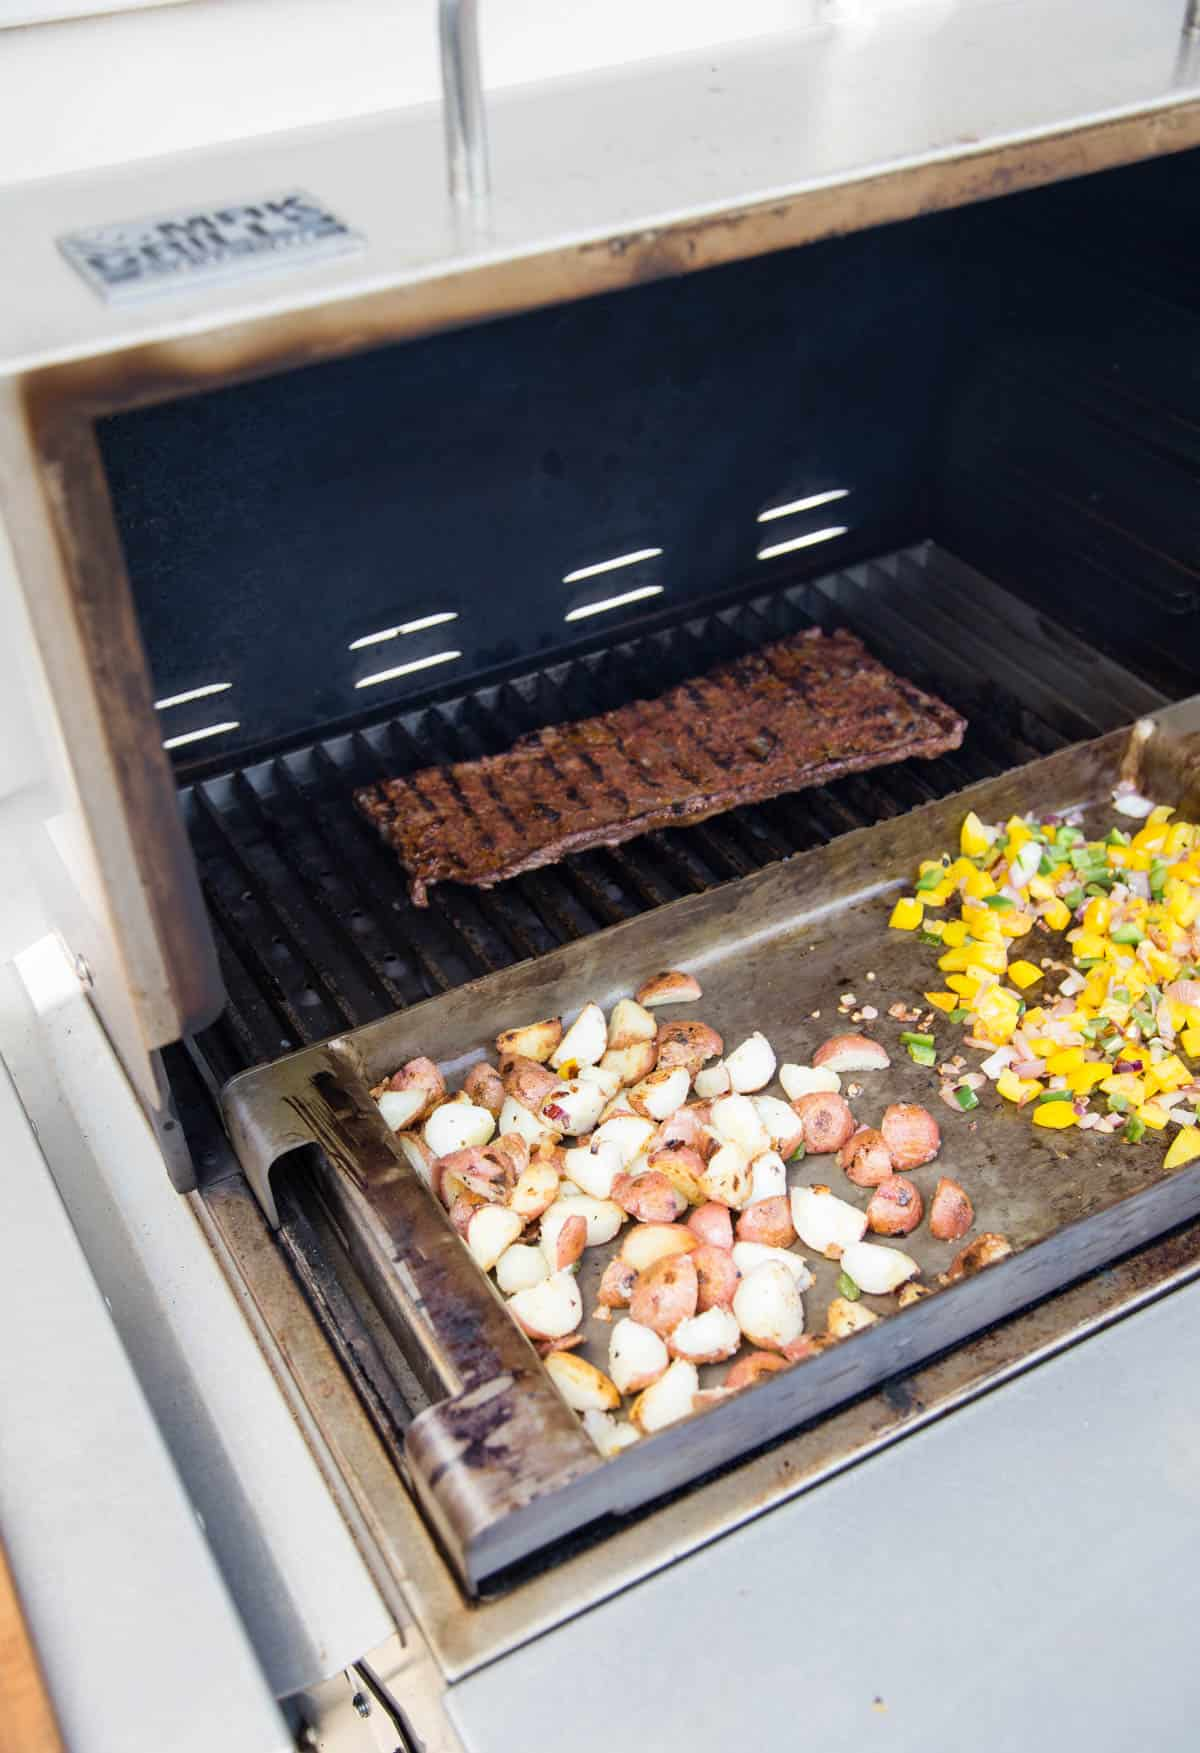 A grill with a skirt steak cooking in the back and potatoes and vegetables cook on a hot griddle in the front